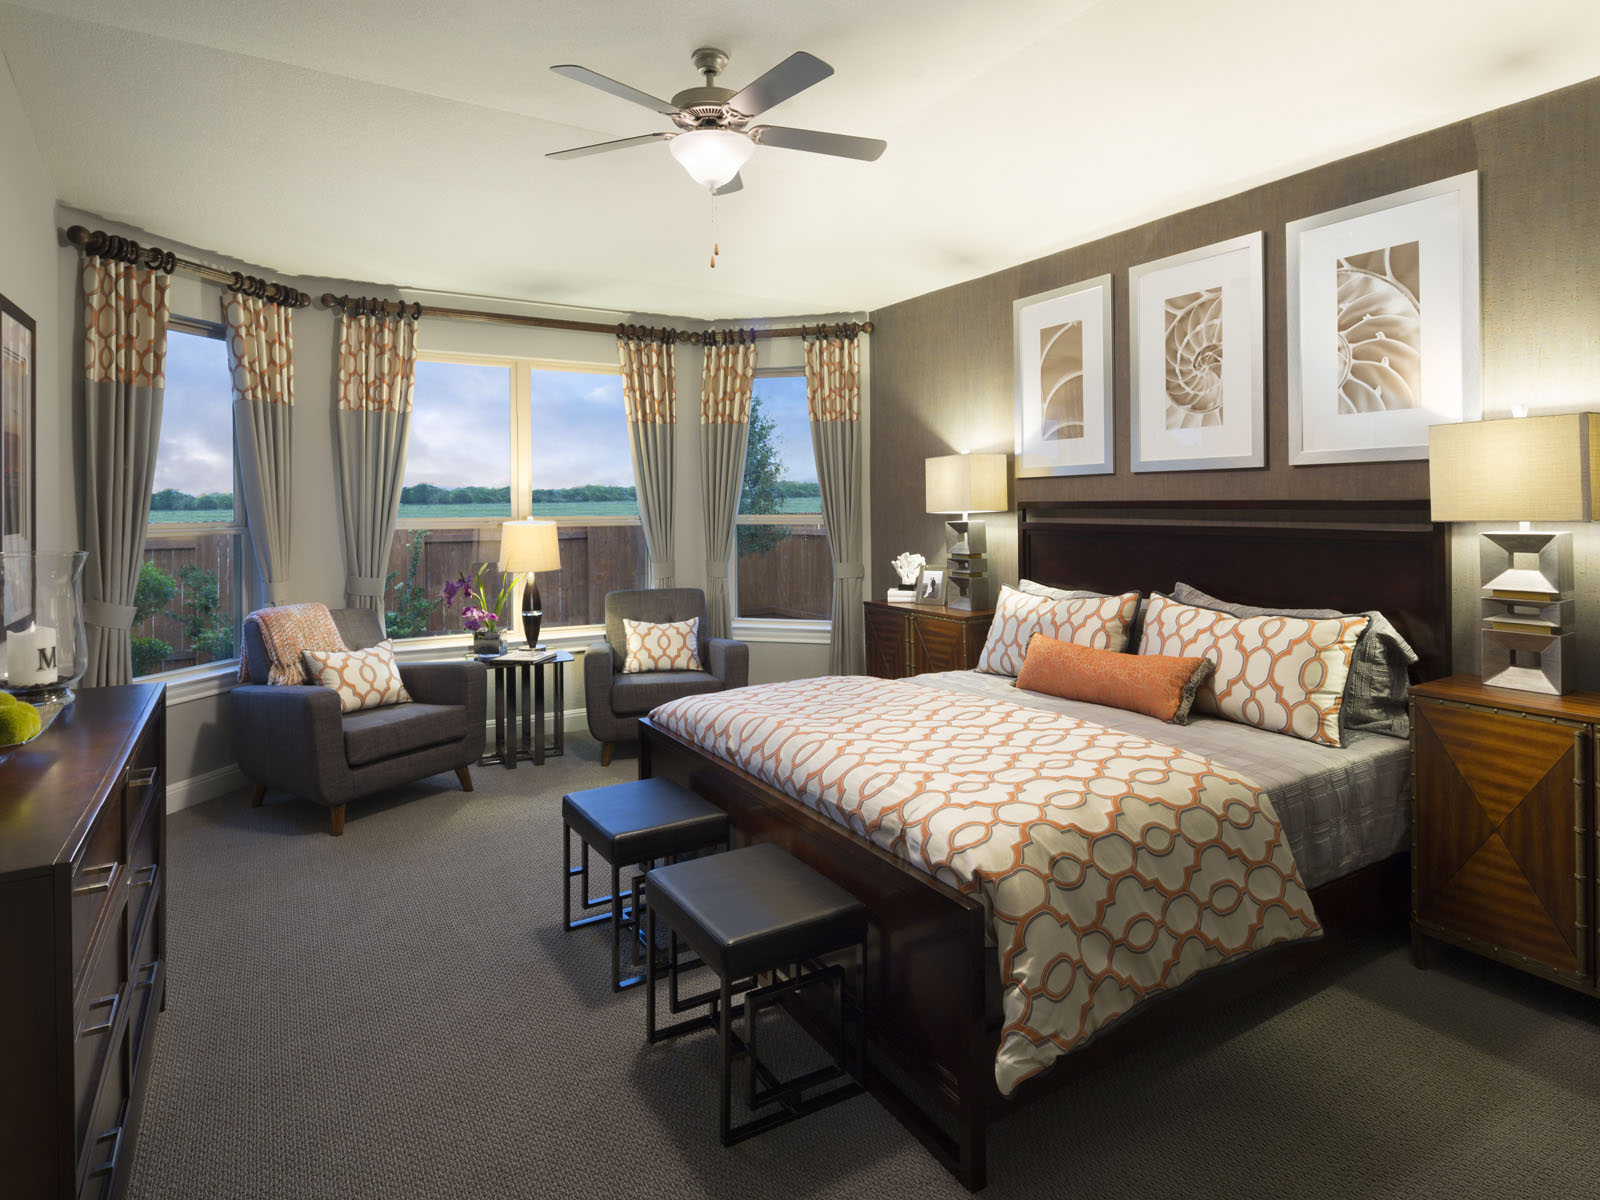 The Holly (4004) Model – 3BR 2BA Homes for Sale in Houston, TX ...